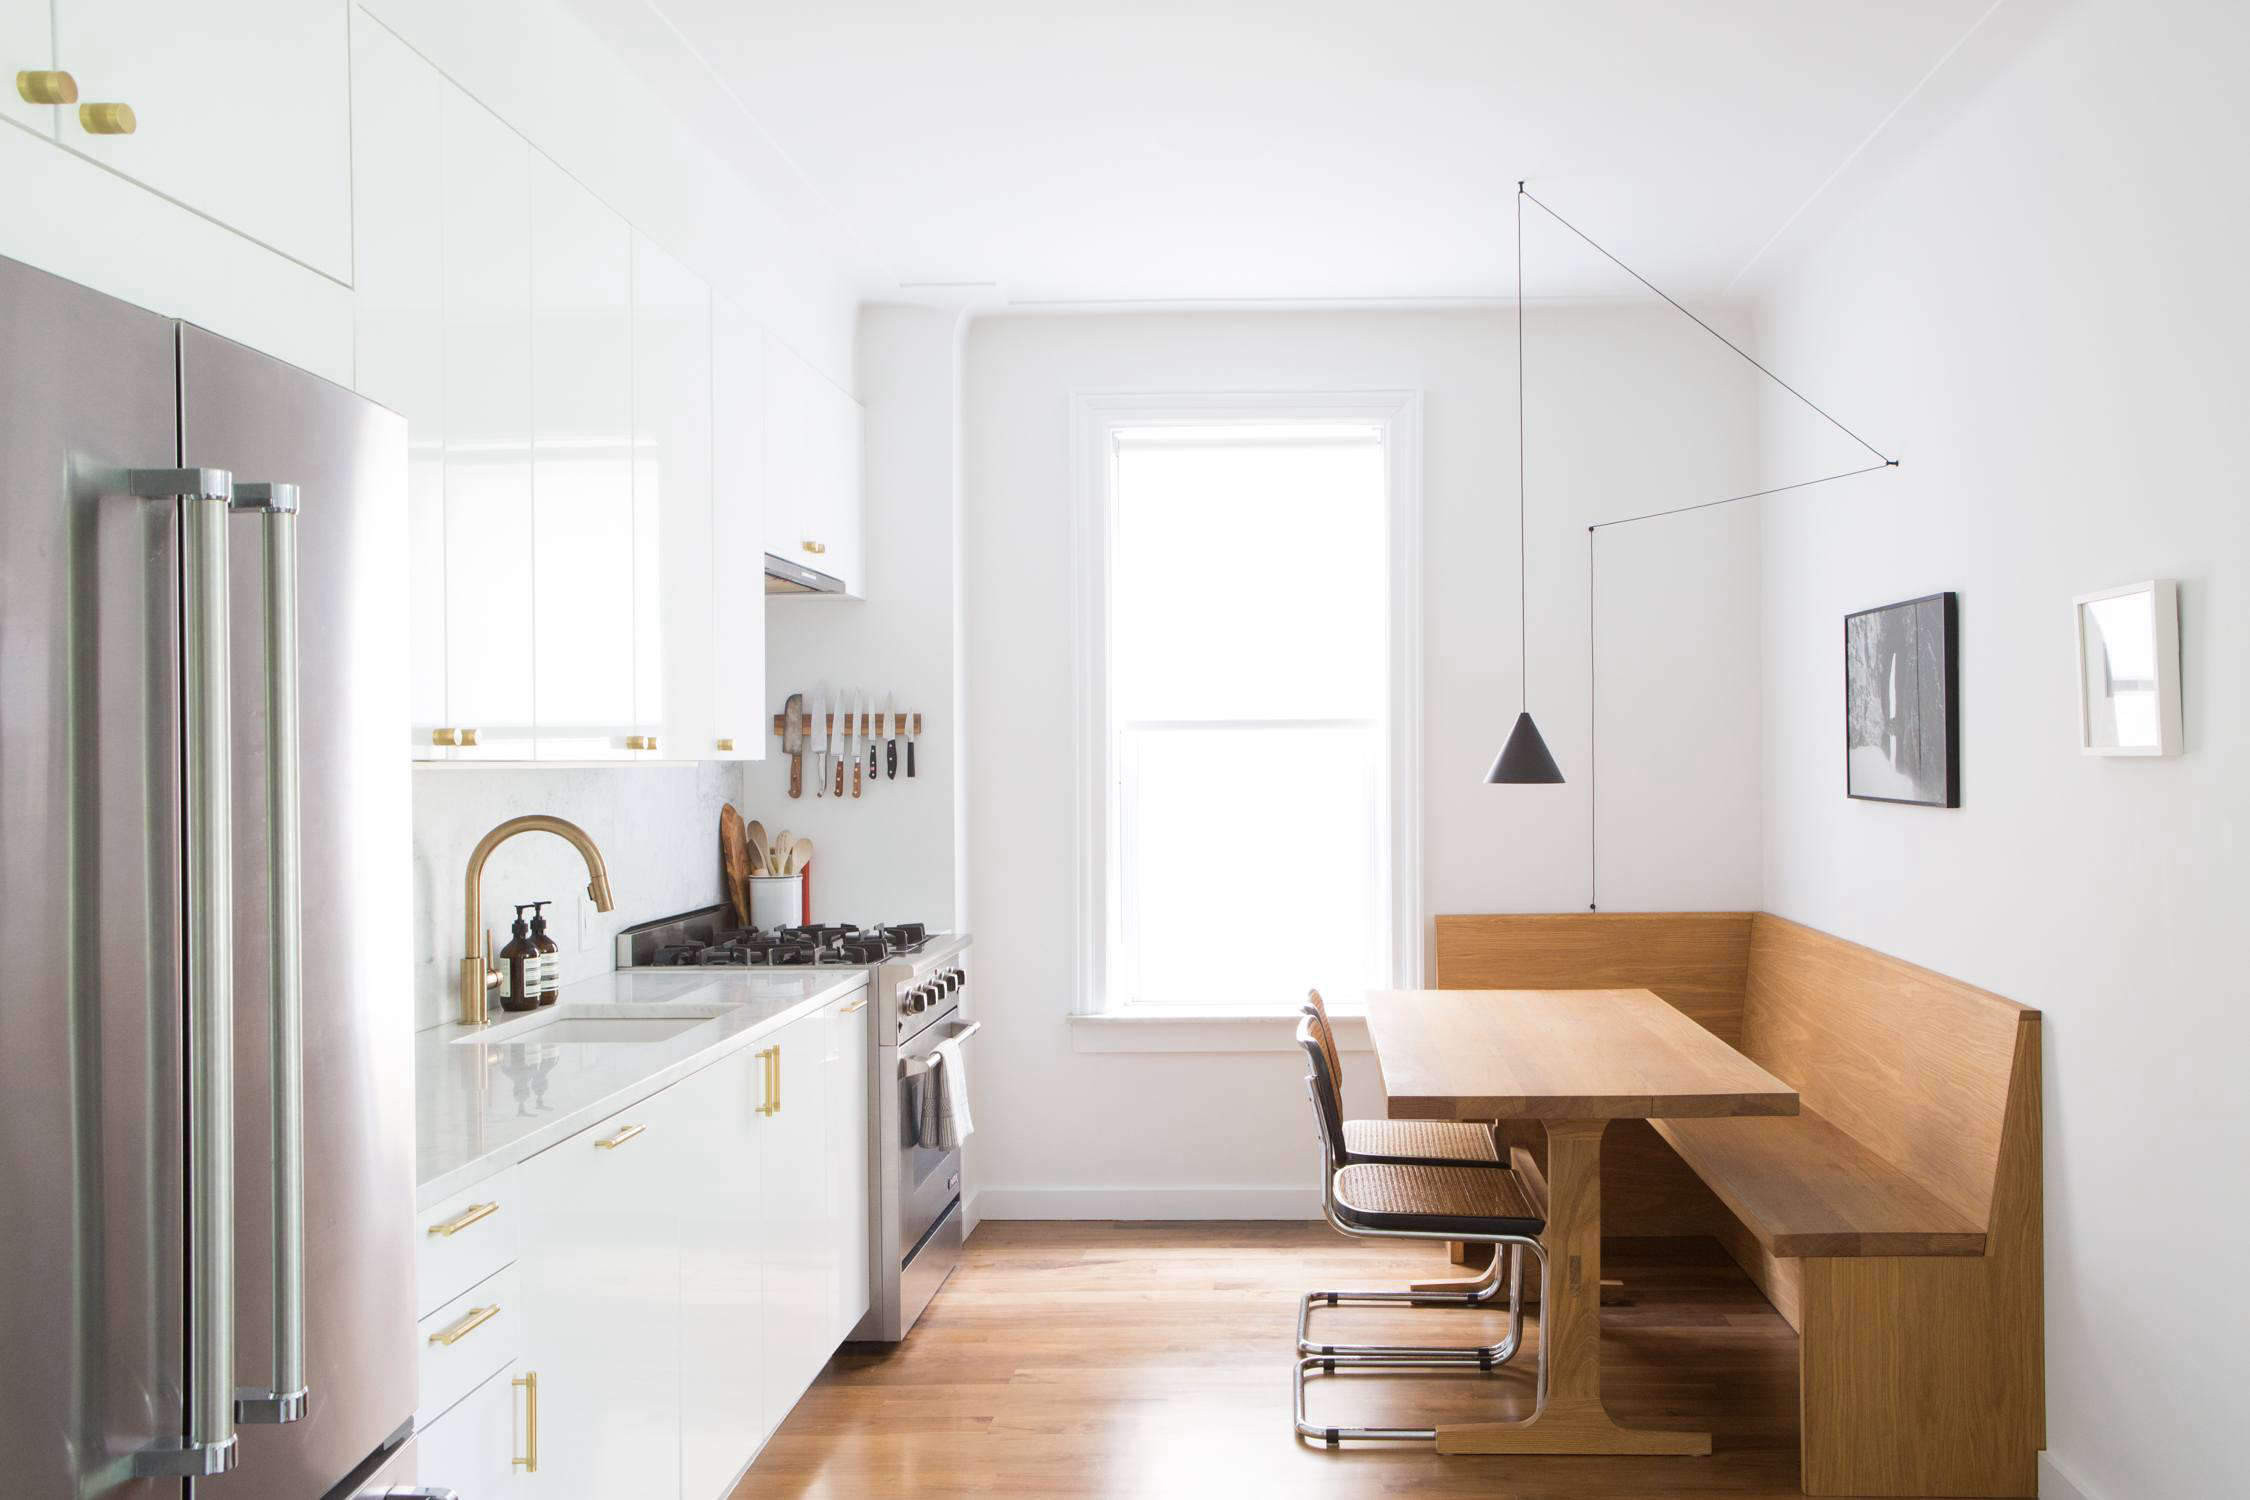 Kitchen of the Week: An Ikea Kitchen with an Elegant Upper Cabinet ...